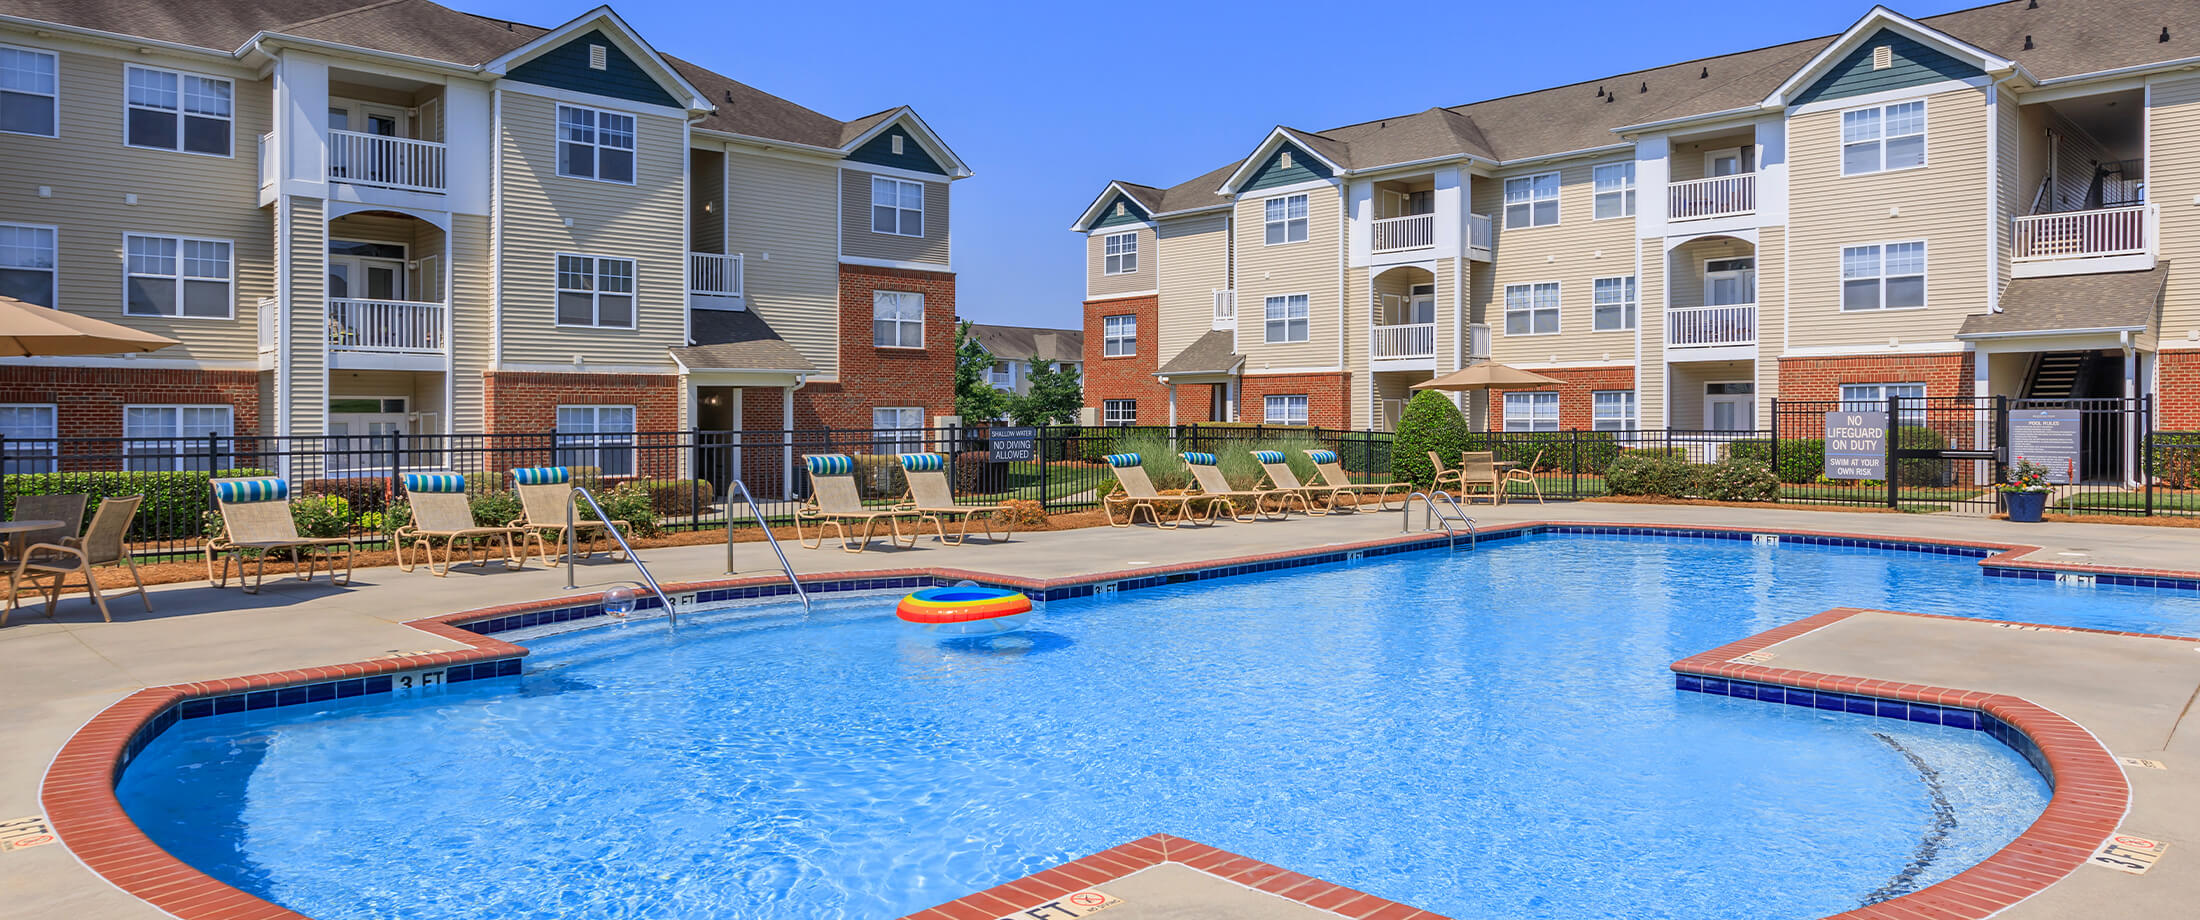 Bradford Park - Apartments in Rock Hill, SC